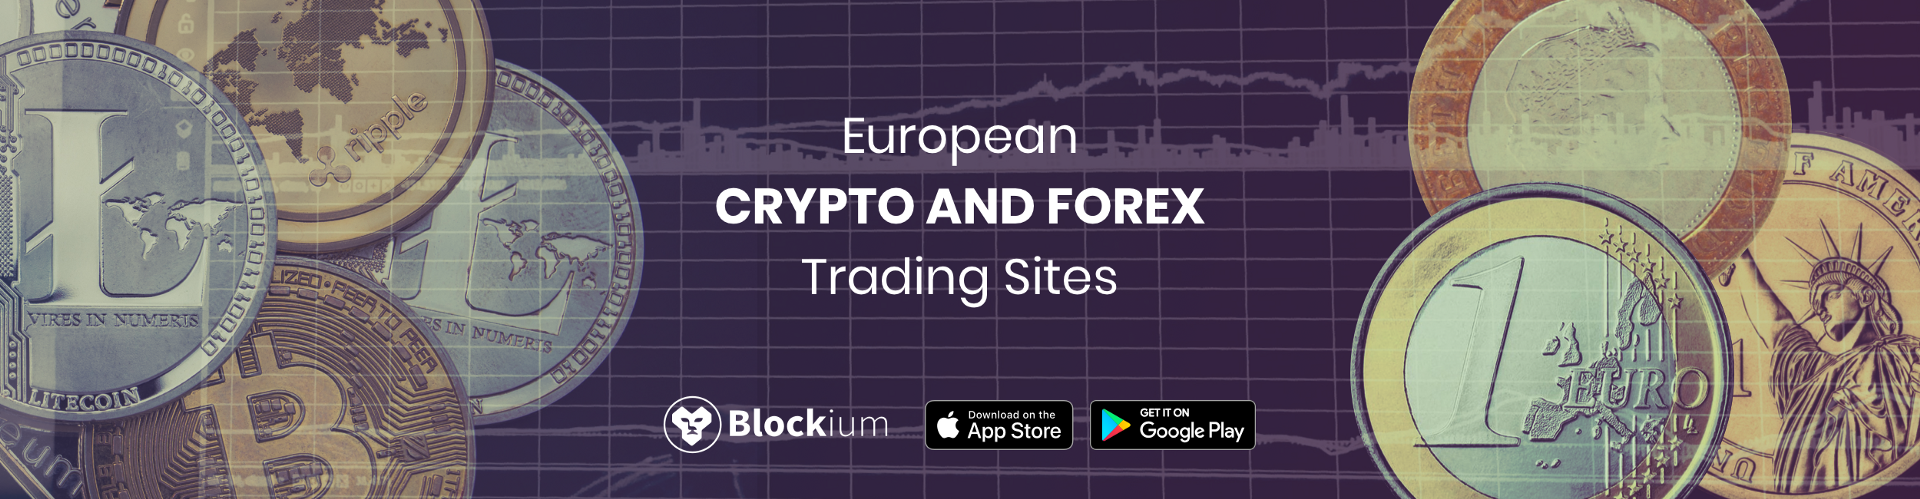 Ctrader forex trading system and application.